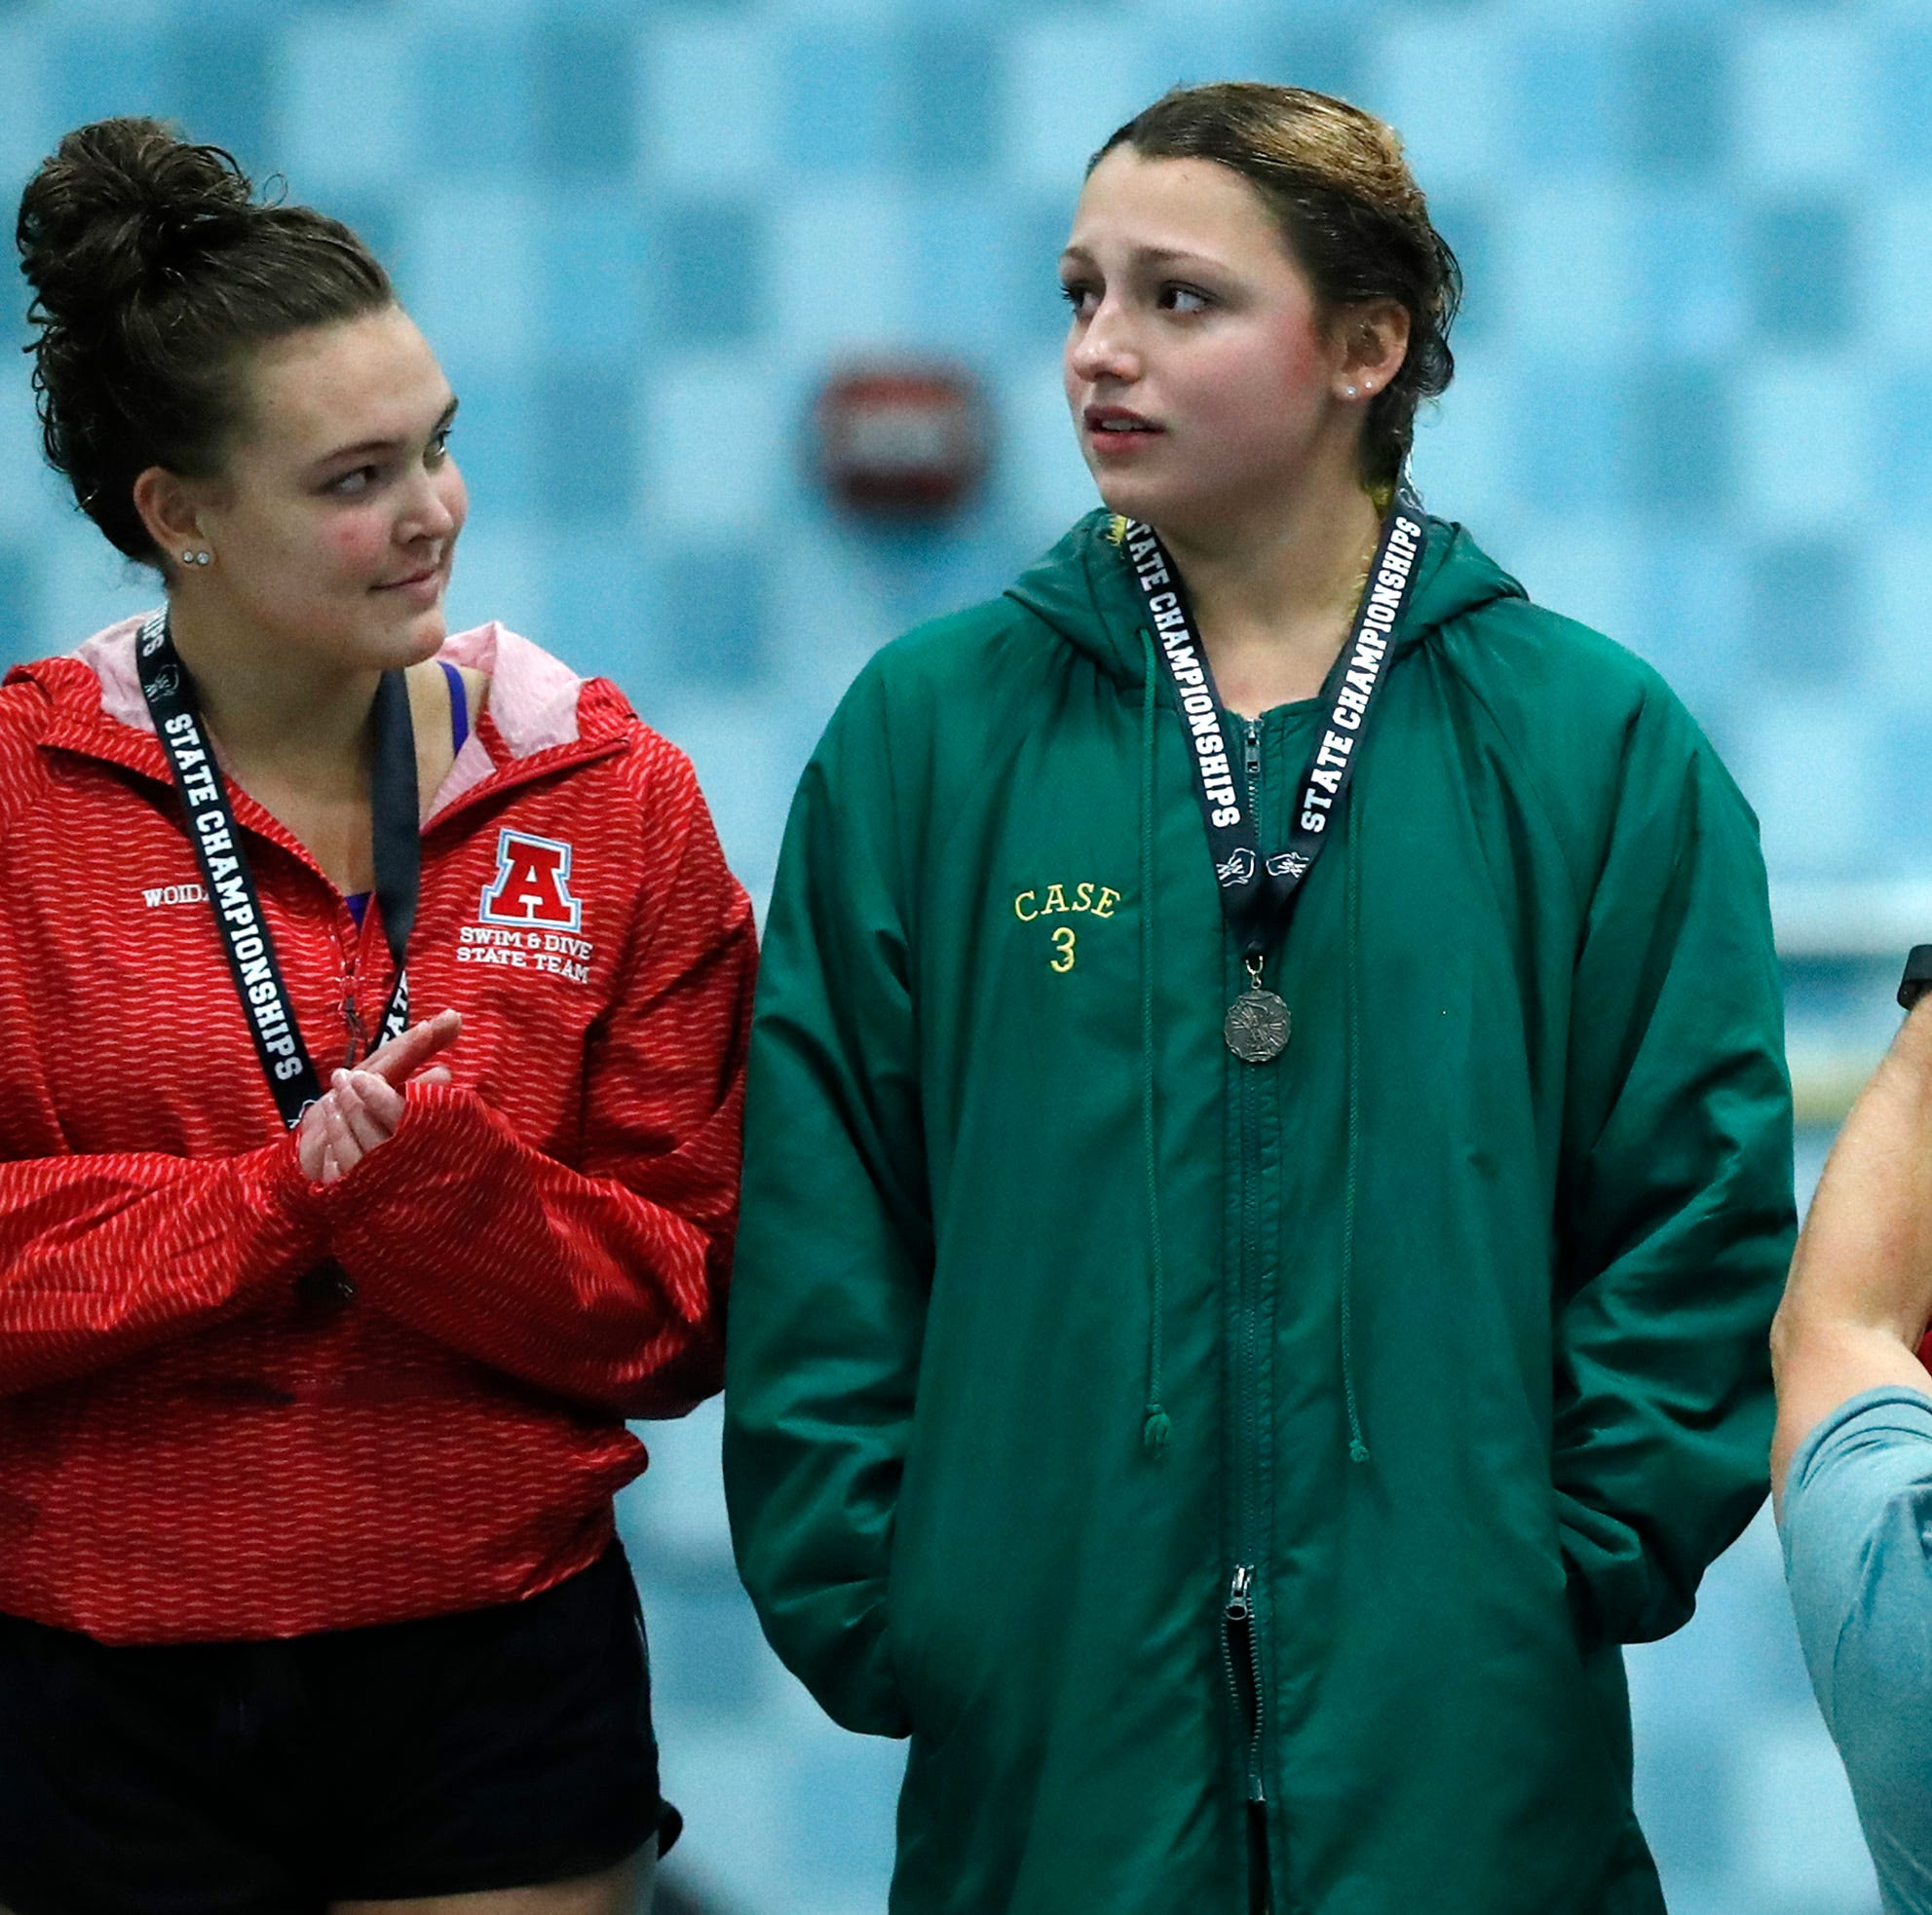 Neenah's Osero wins third consecutive state diving championship